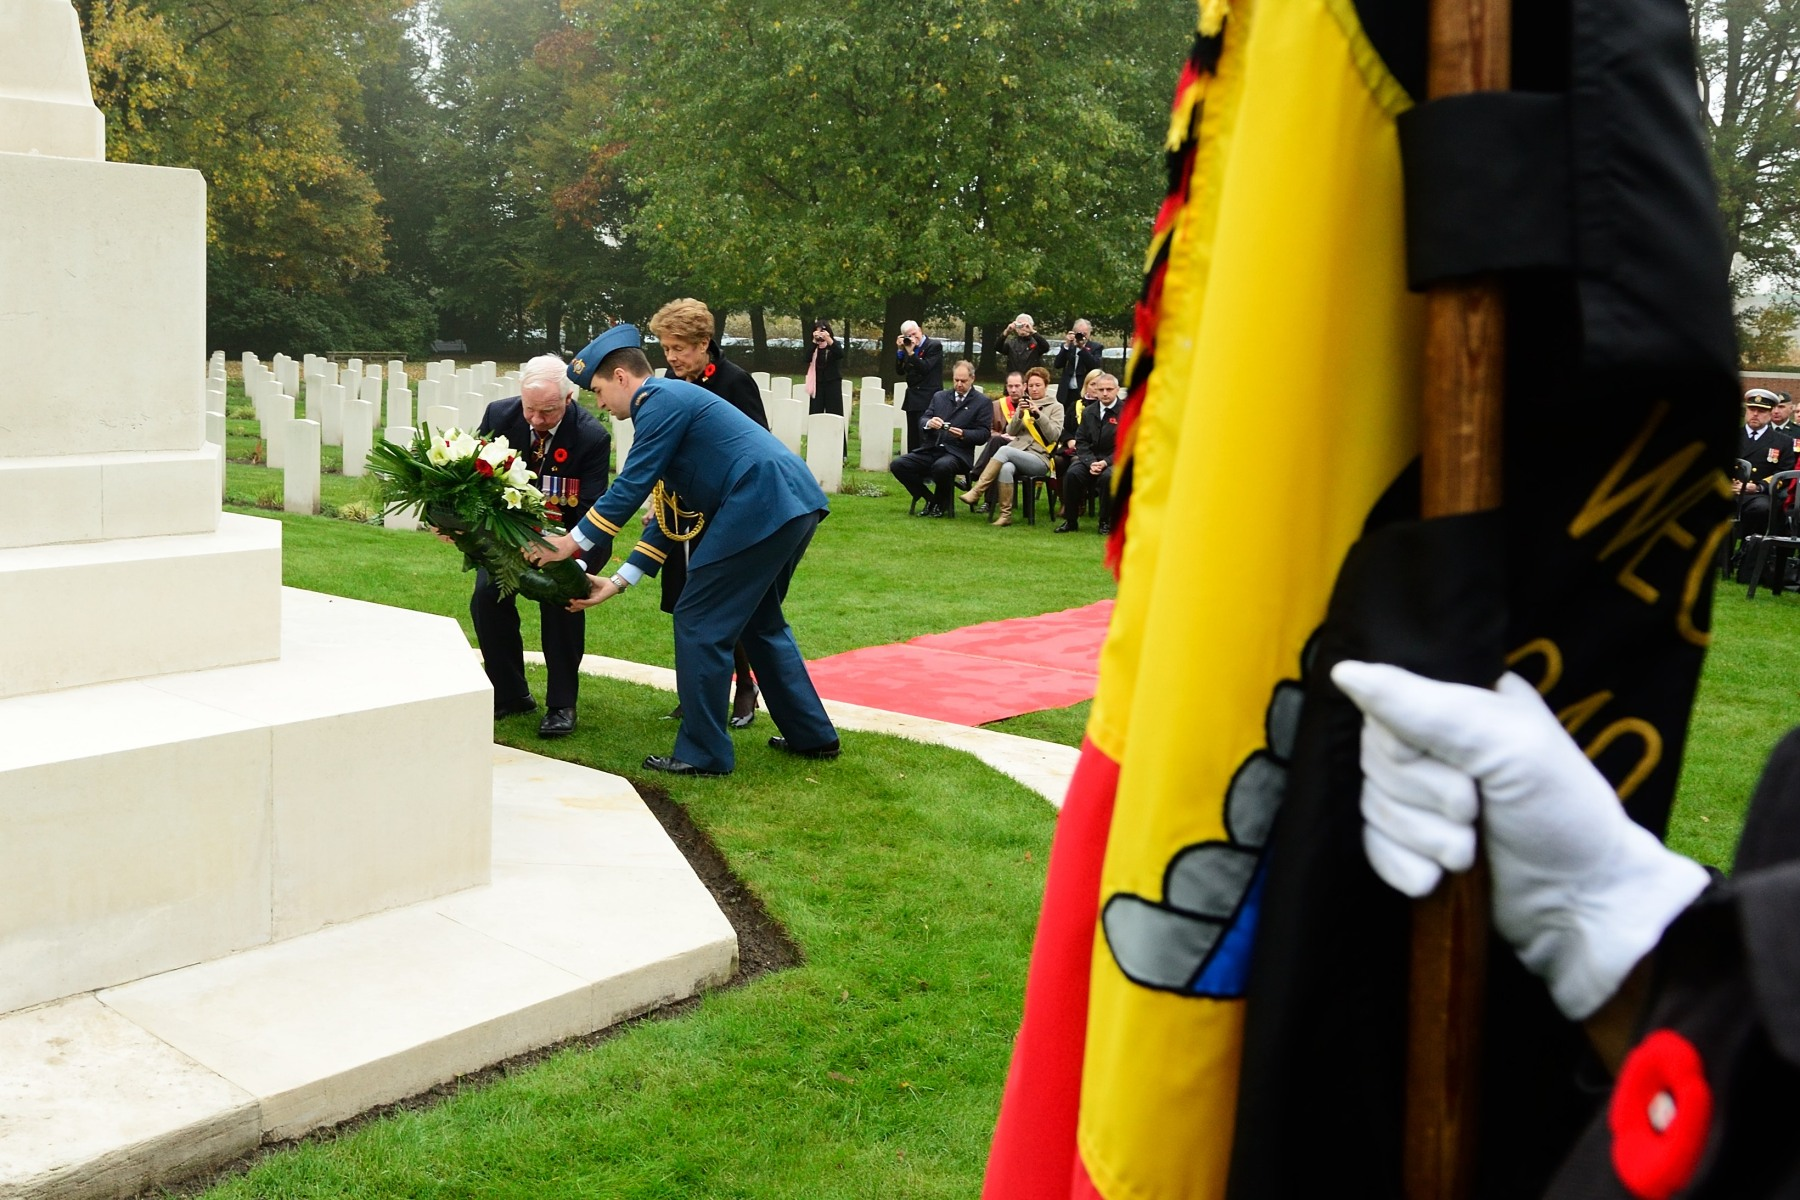 Their Excellencies laid a wreath.